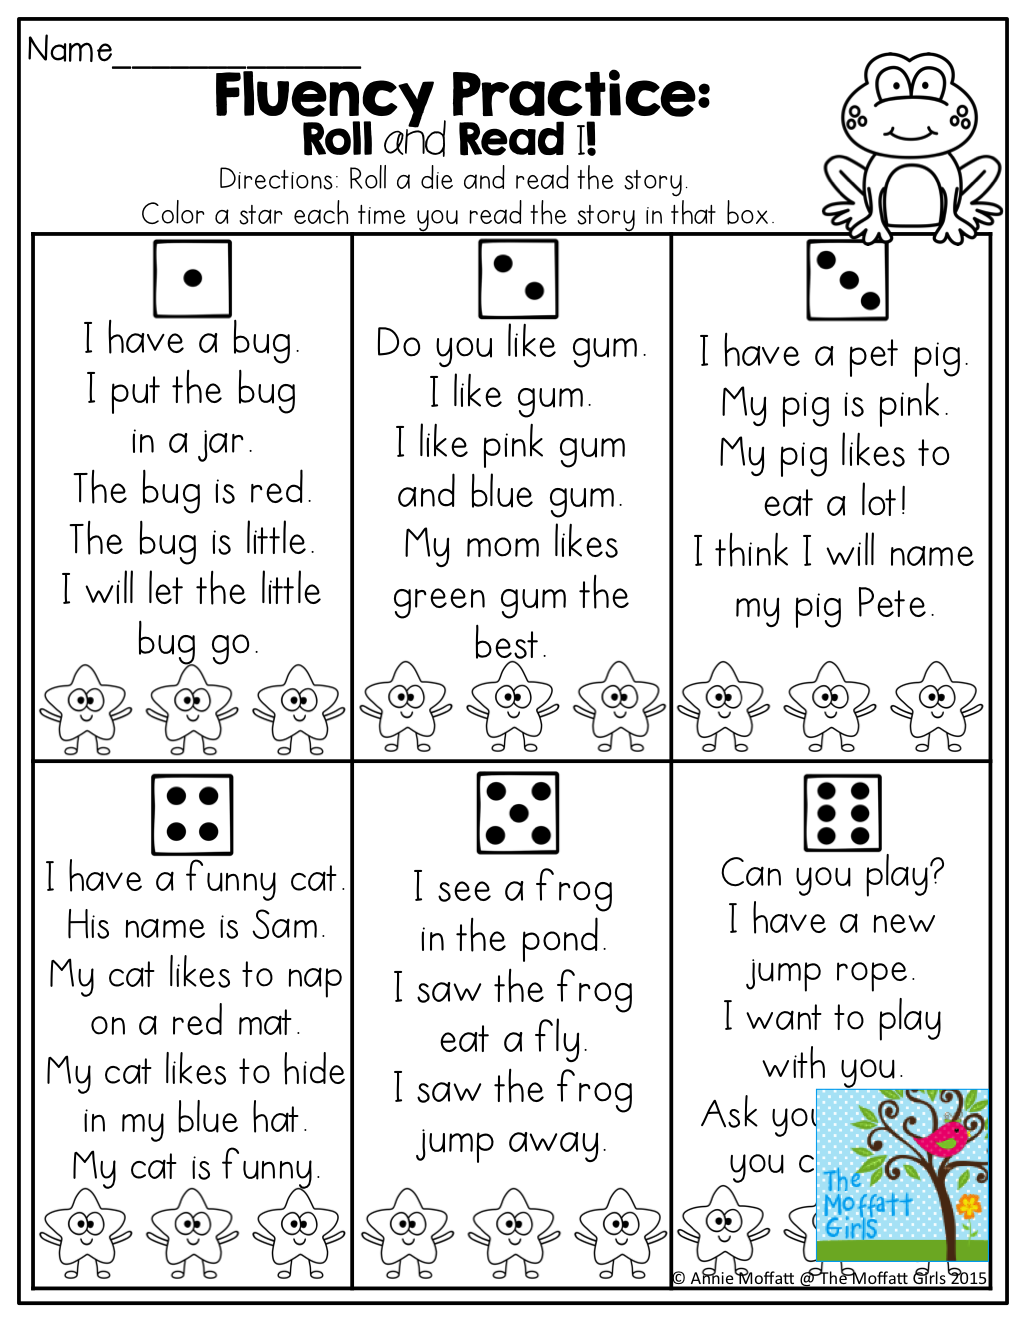 Fluency Practice Roll And Read A Simple Short Story With